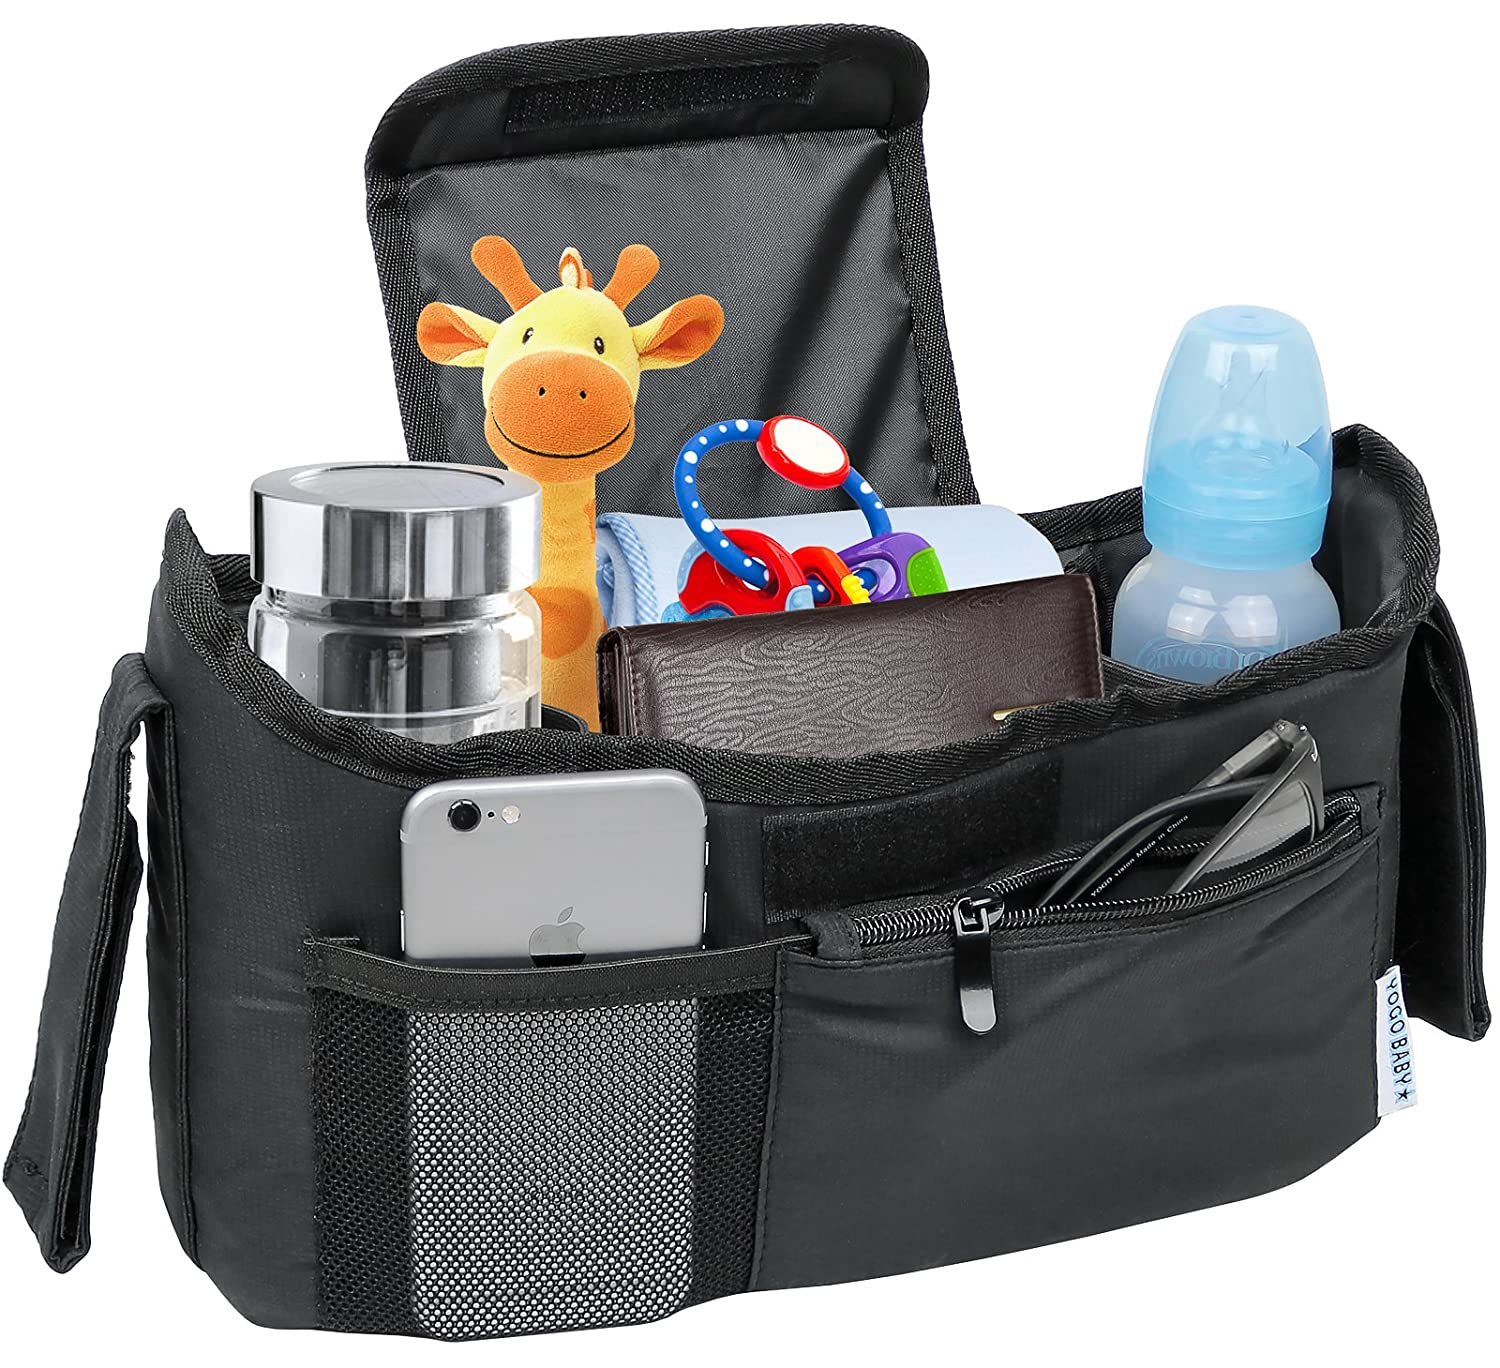 Deluxe Stroller Organizer Universal Fit for all Strollers Multiple Pockets Zipper and Phone Pocket Deep Insulated Cup Holders Yogo Baby